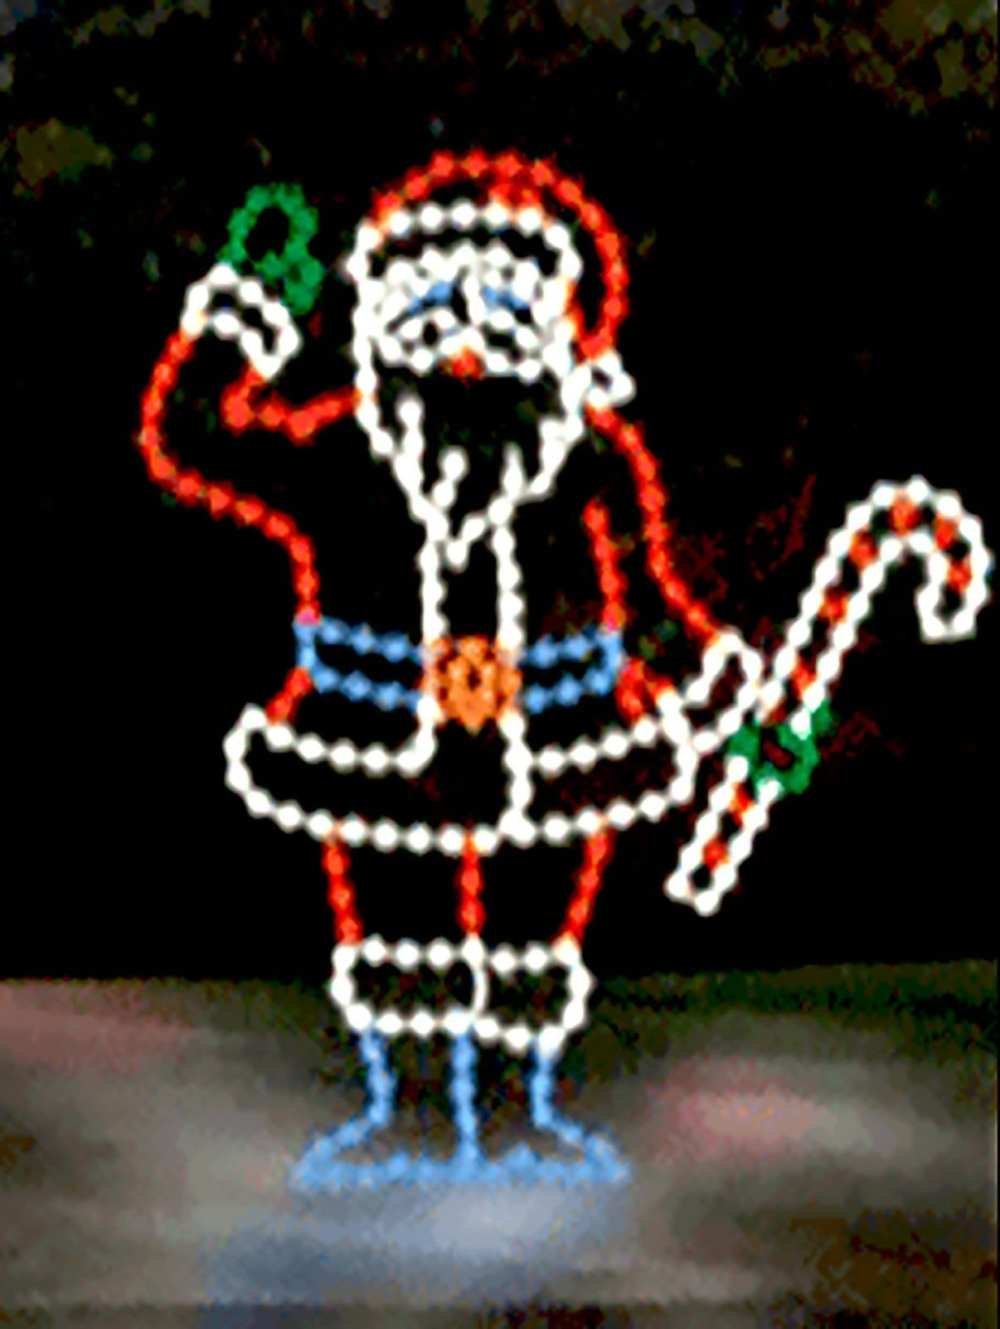 SSTL-122 Santa with Candy Cane